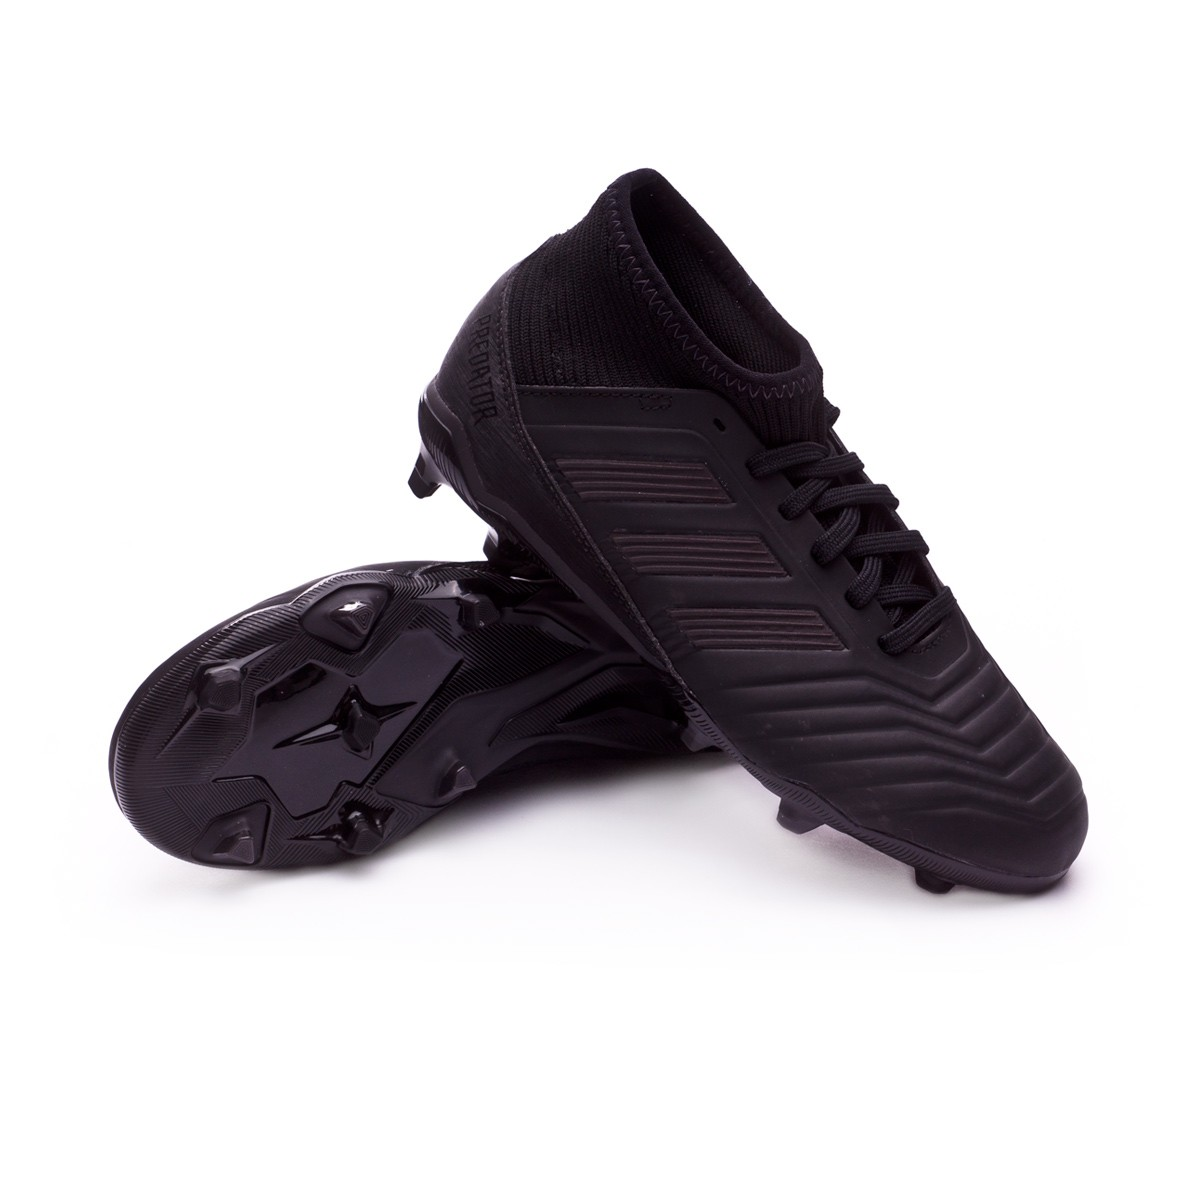 size 40 a2a3f f48ff ... spain boot adidas kids predator 18.3 fg core black real coral leaked  soccer 9f4ec c47fc